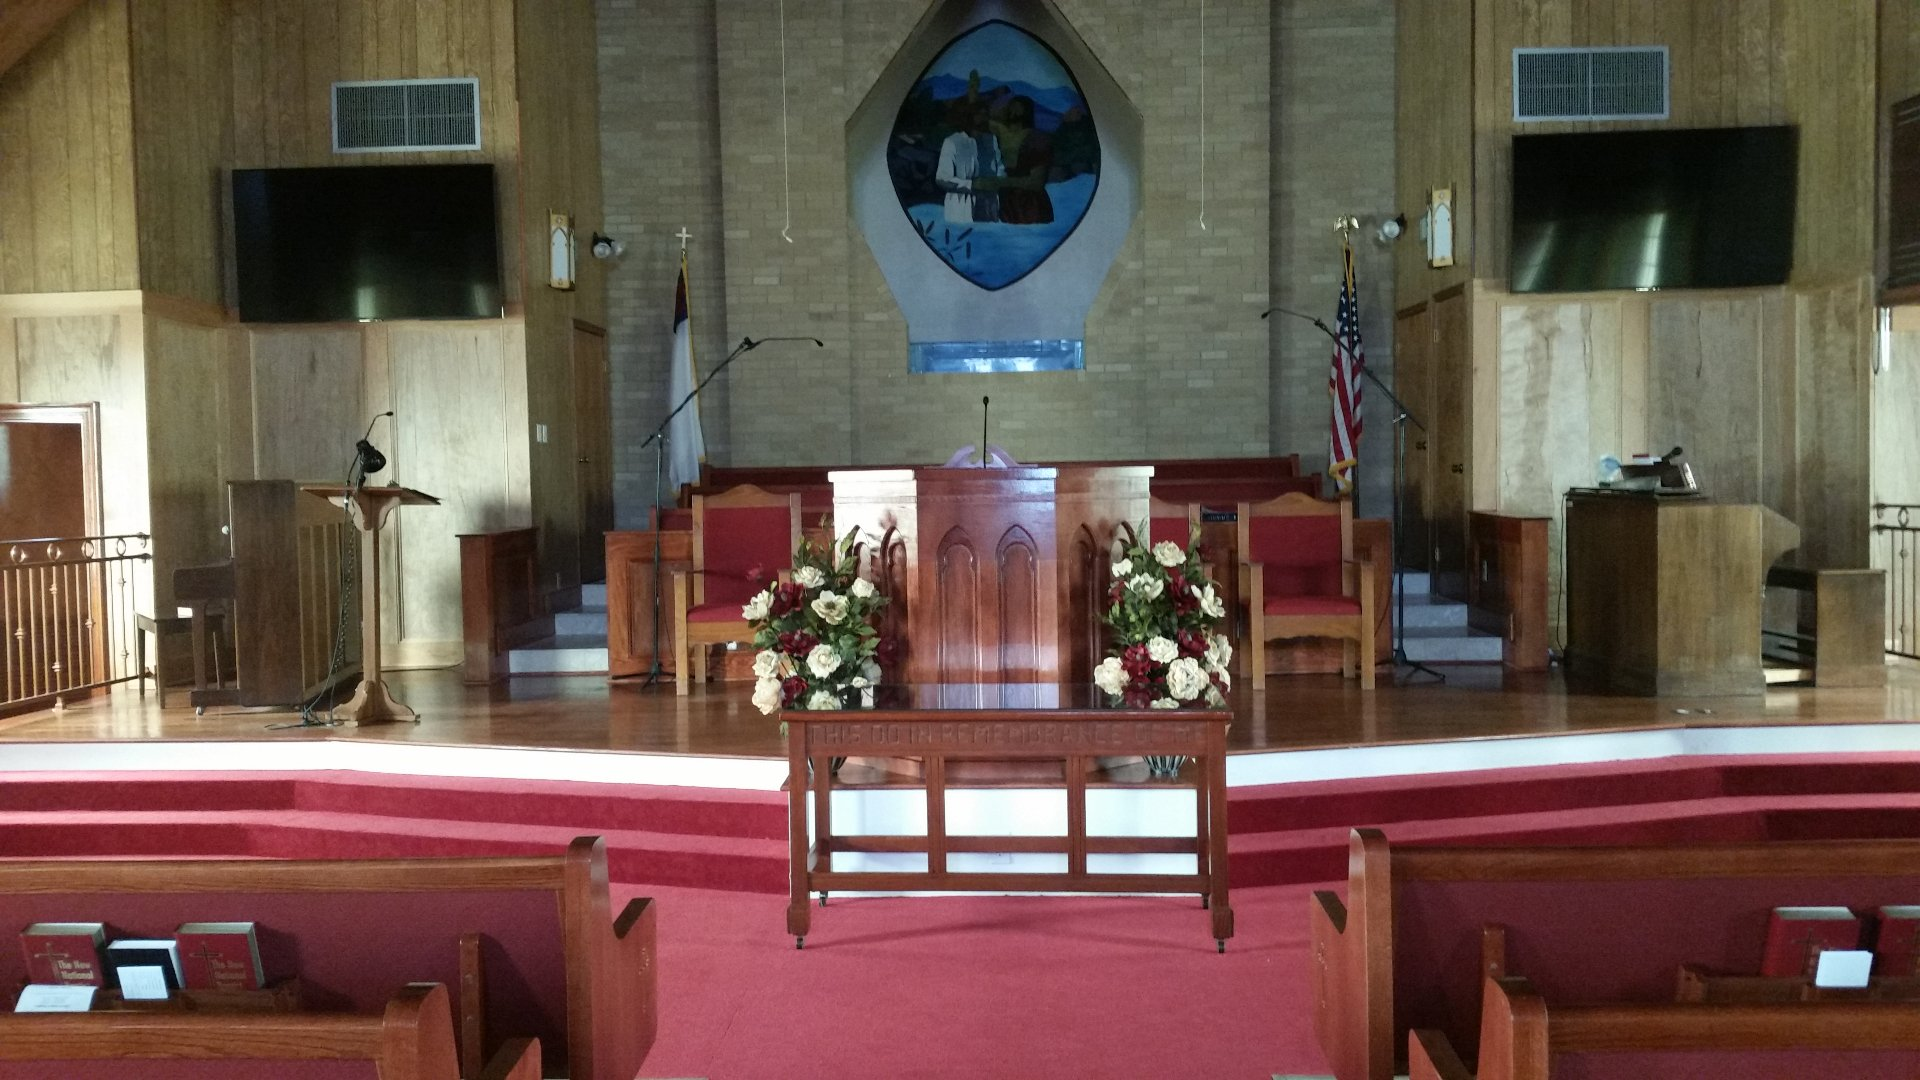 Installation of various sanctuary displays using Atlona Controls at Shady Grove Missionary Baptist Church